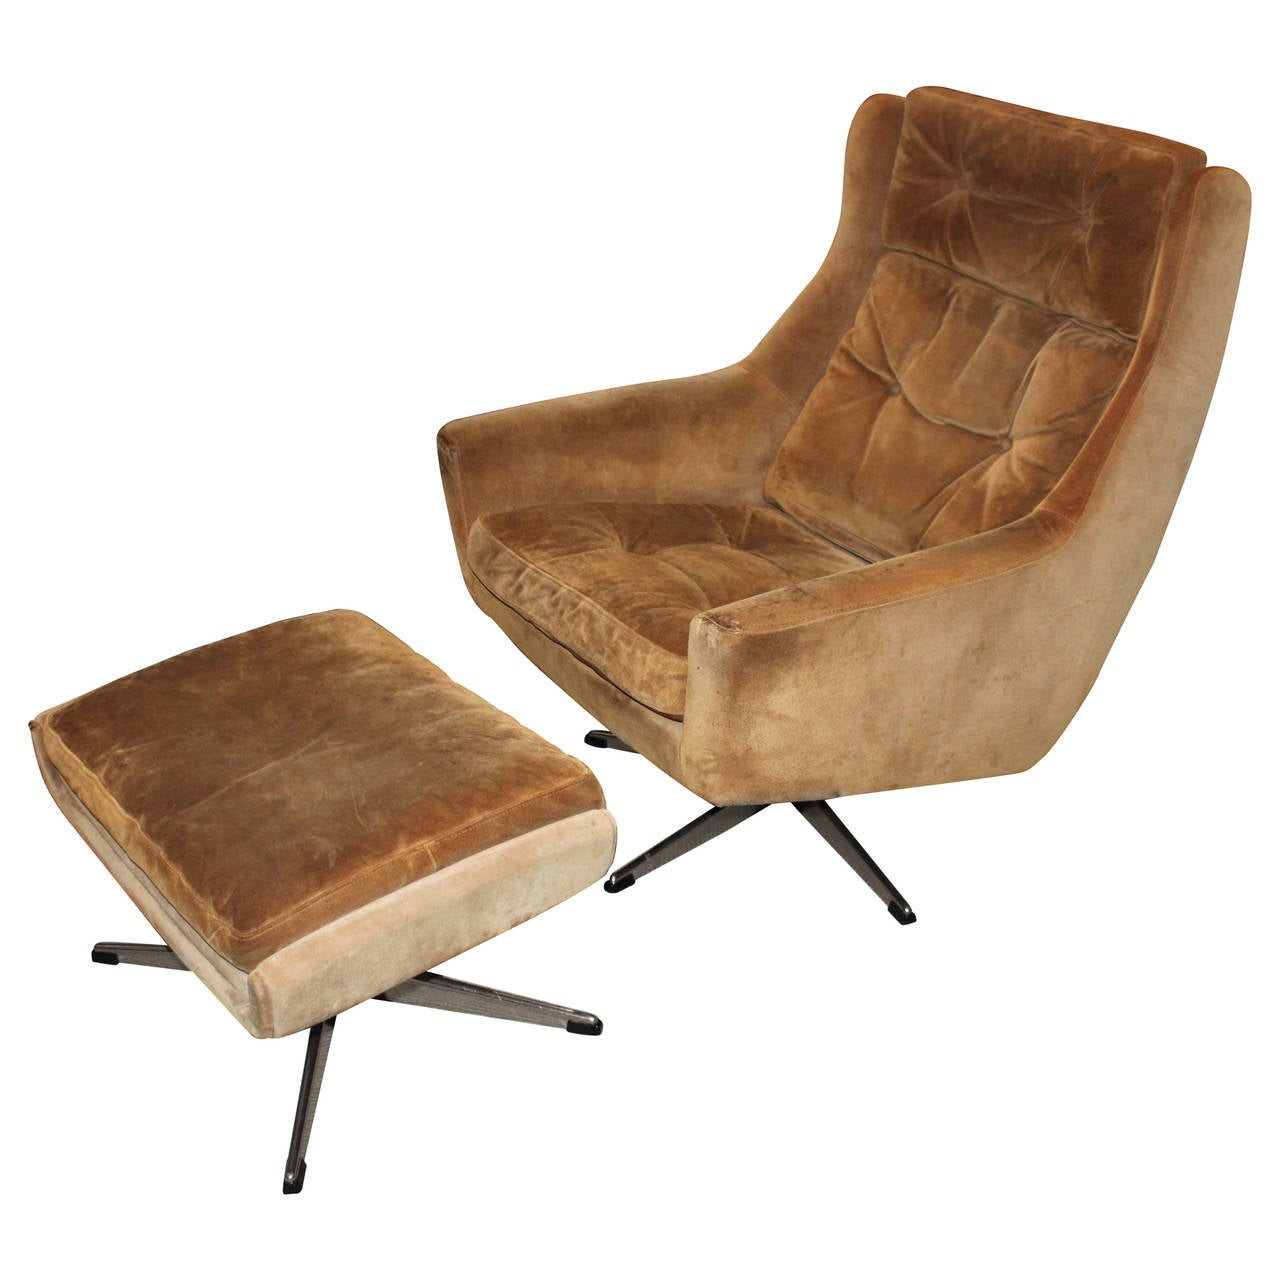 Lounge Designer Furniture: Mid-Century Modern Overman Lounge Chair With Ottoman At